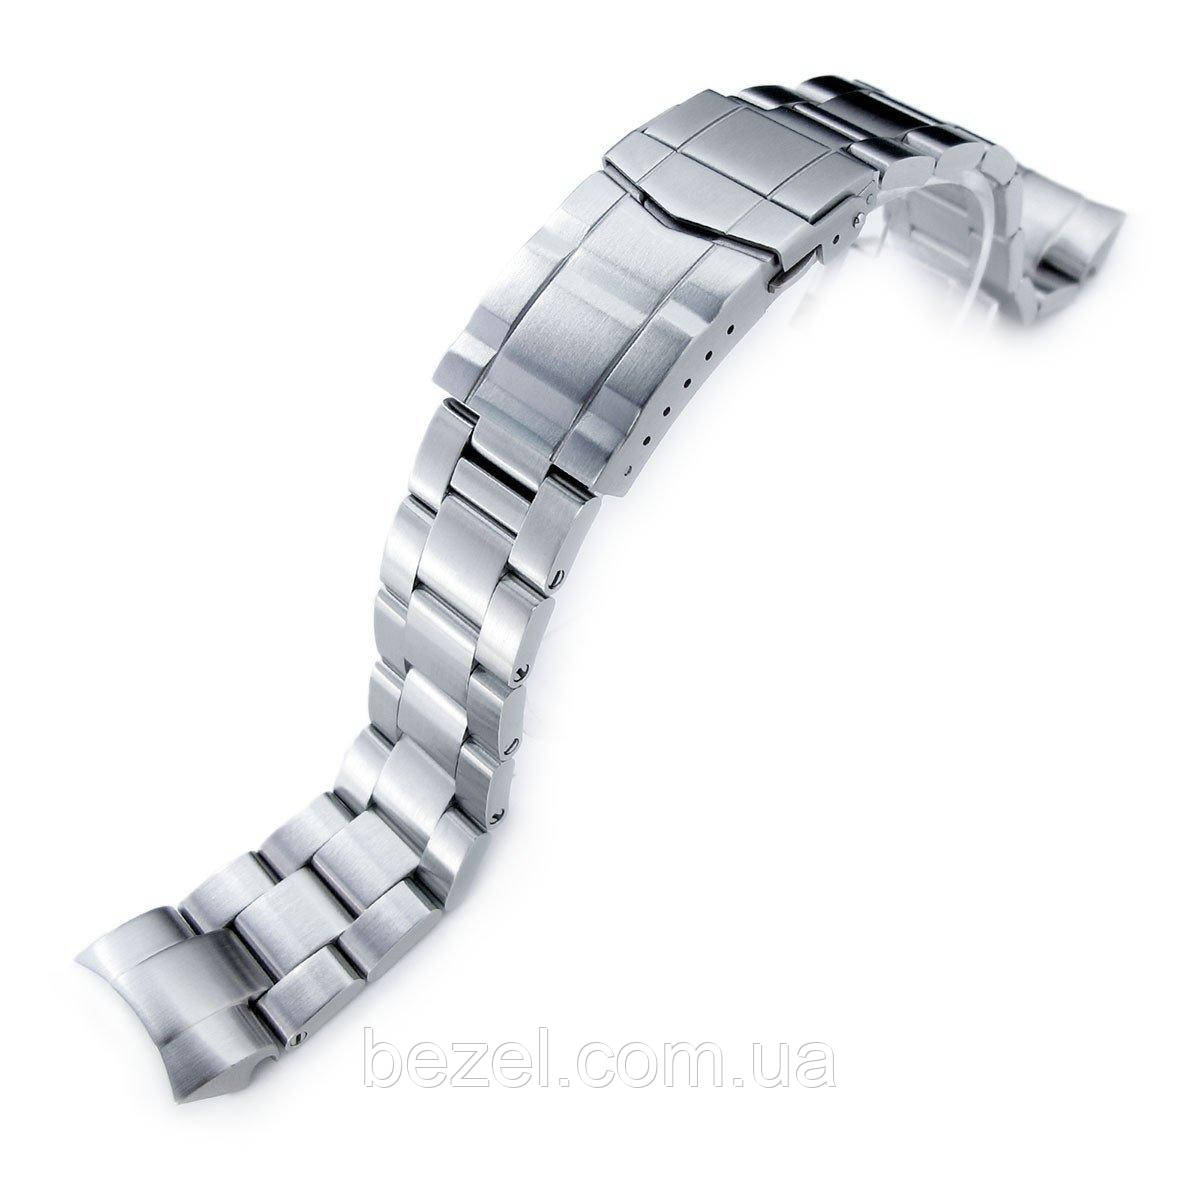 20mm Super Oyster Watch Band for Seiko Solar Power SSC015, 316L SS Submariner Clasp